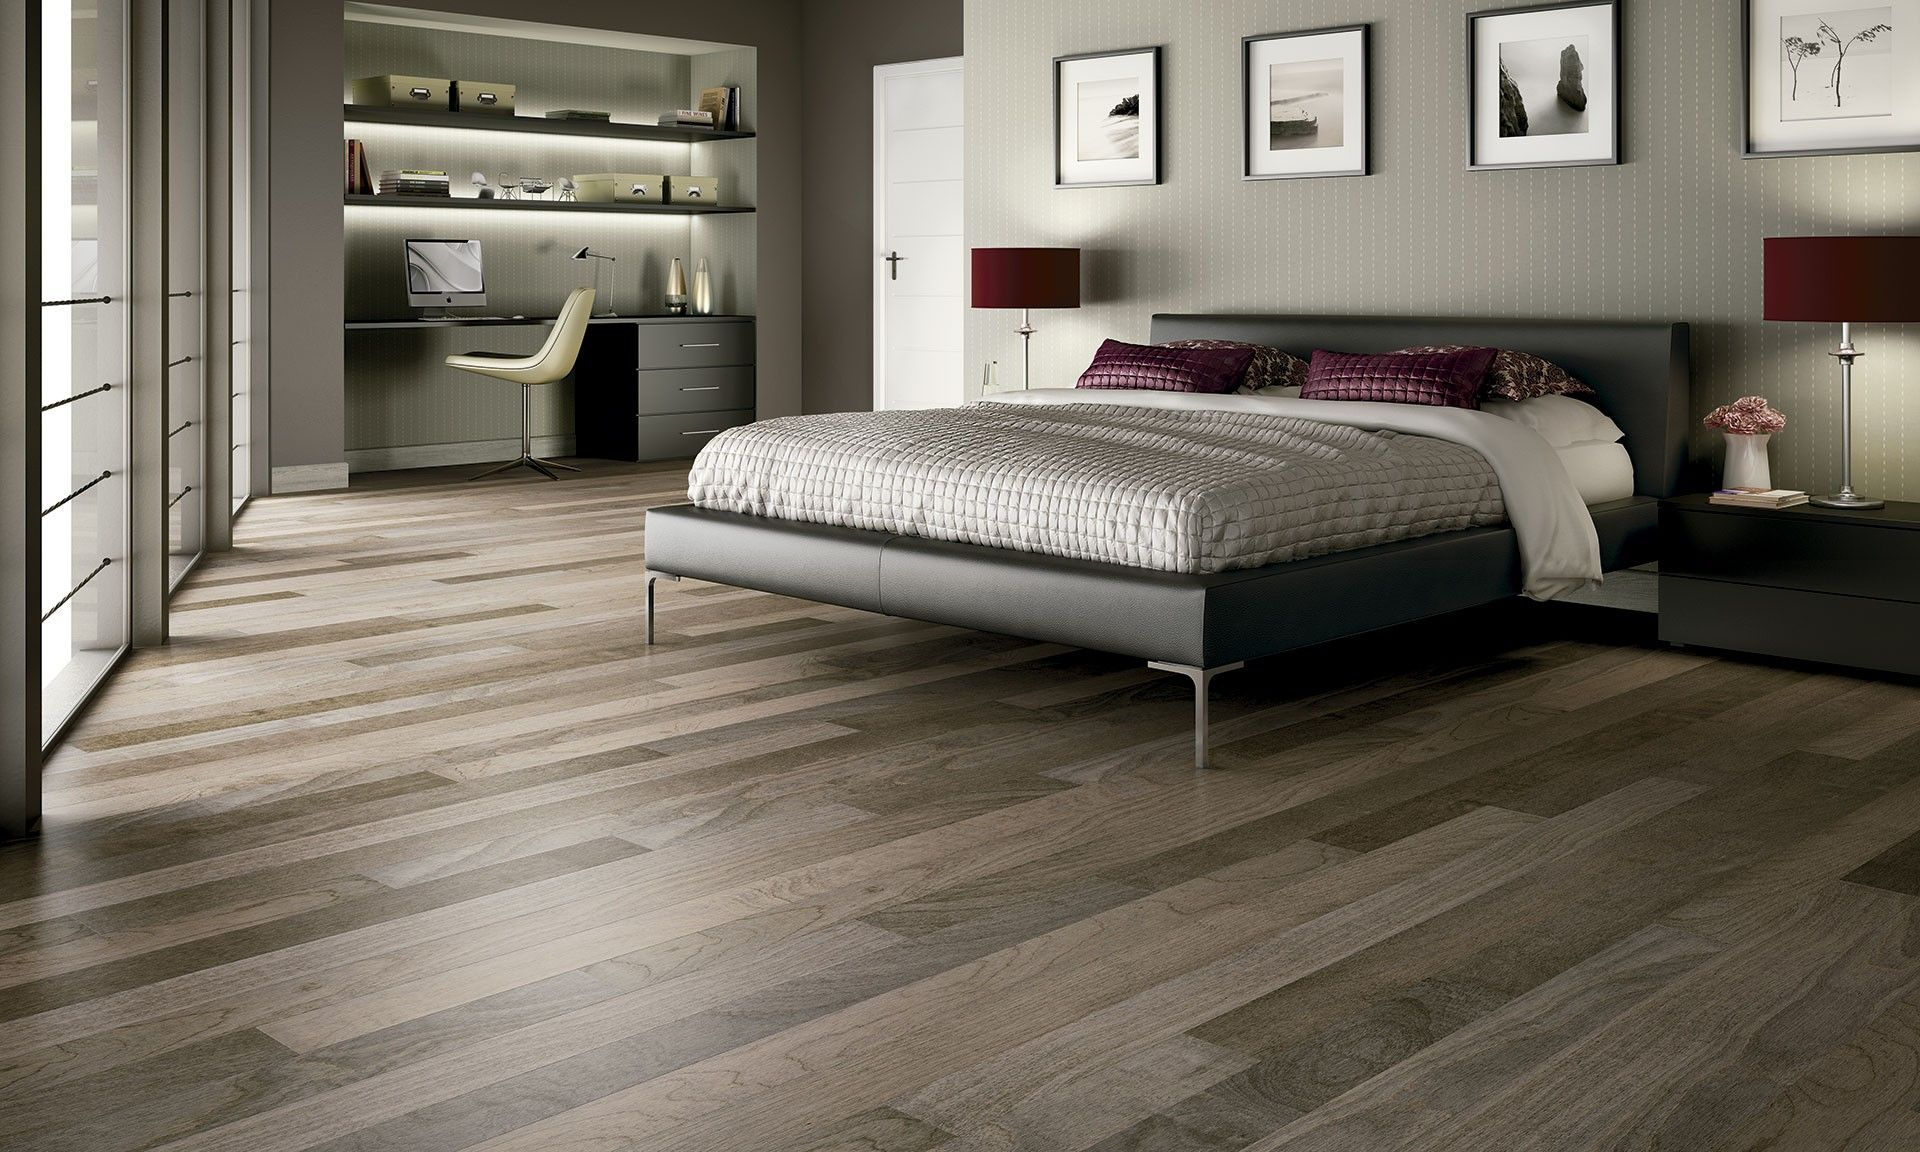 Accessories U0026 Furniture,Admirable Cost Of Wood Laminate Flooring With Hardwood  Flooring On White And